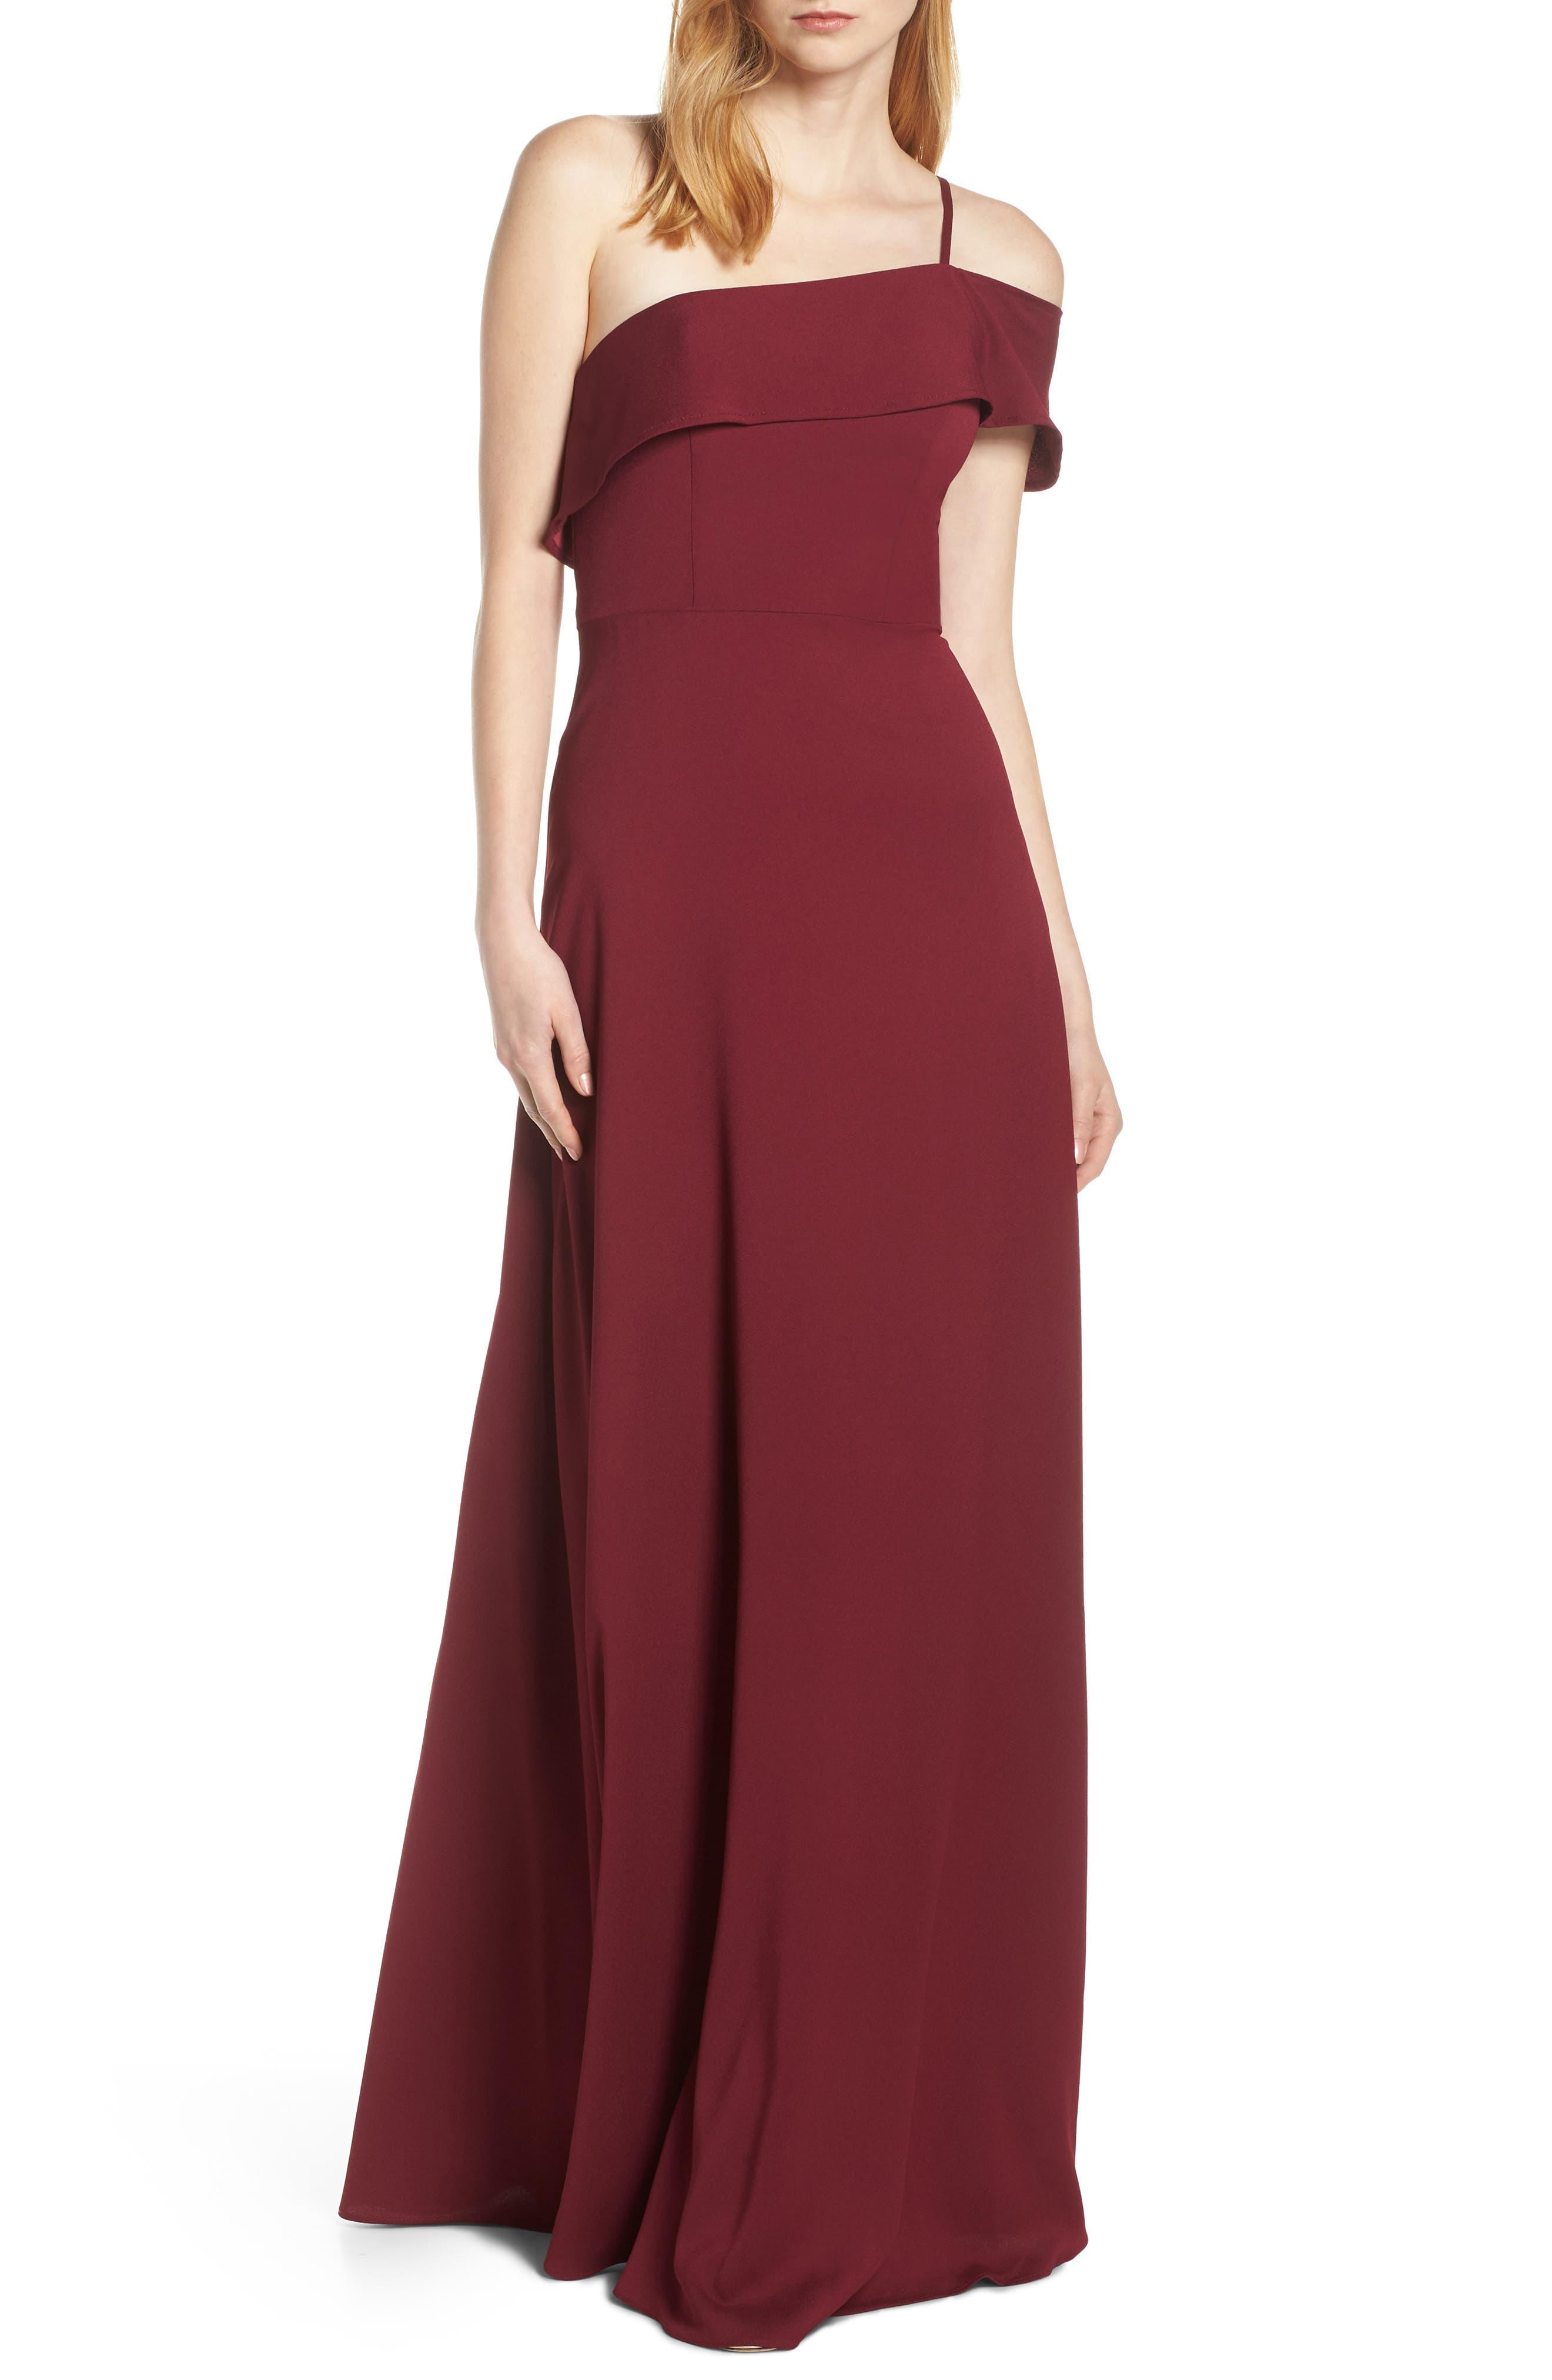 Hayley Paige Occasions One Cold Shoulder Crepe Evening Dress, Burgundy